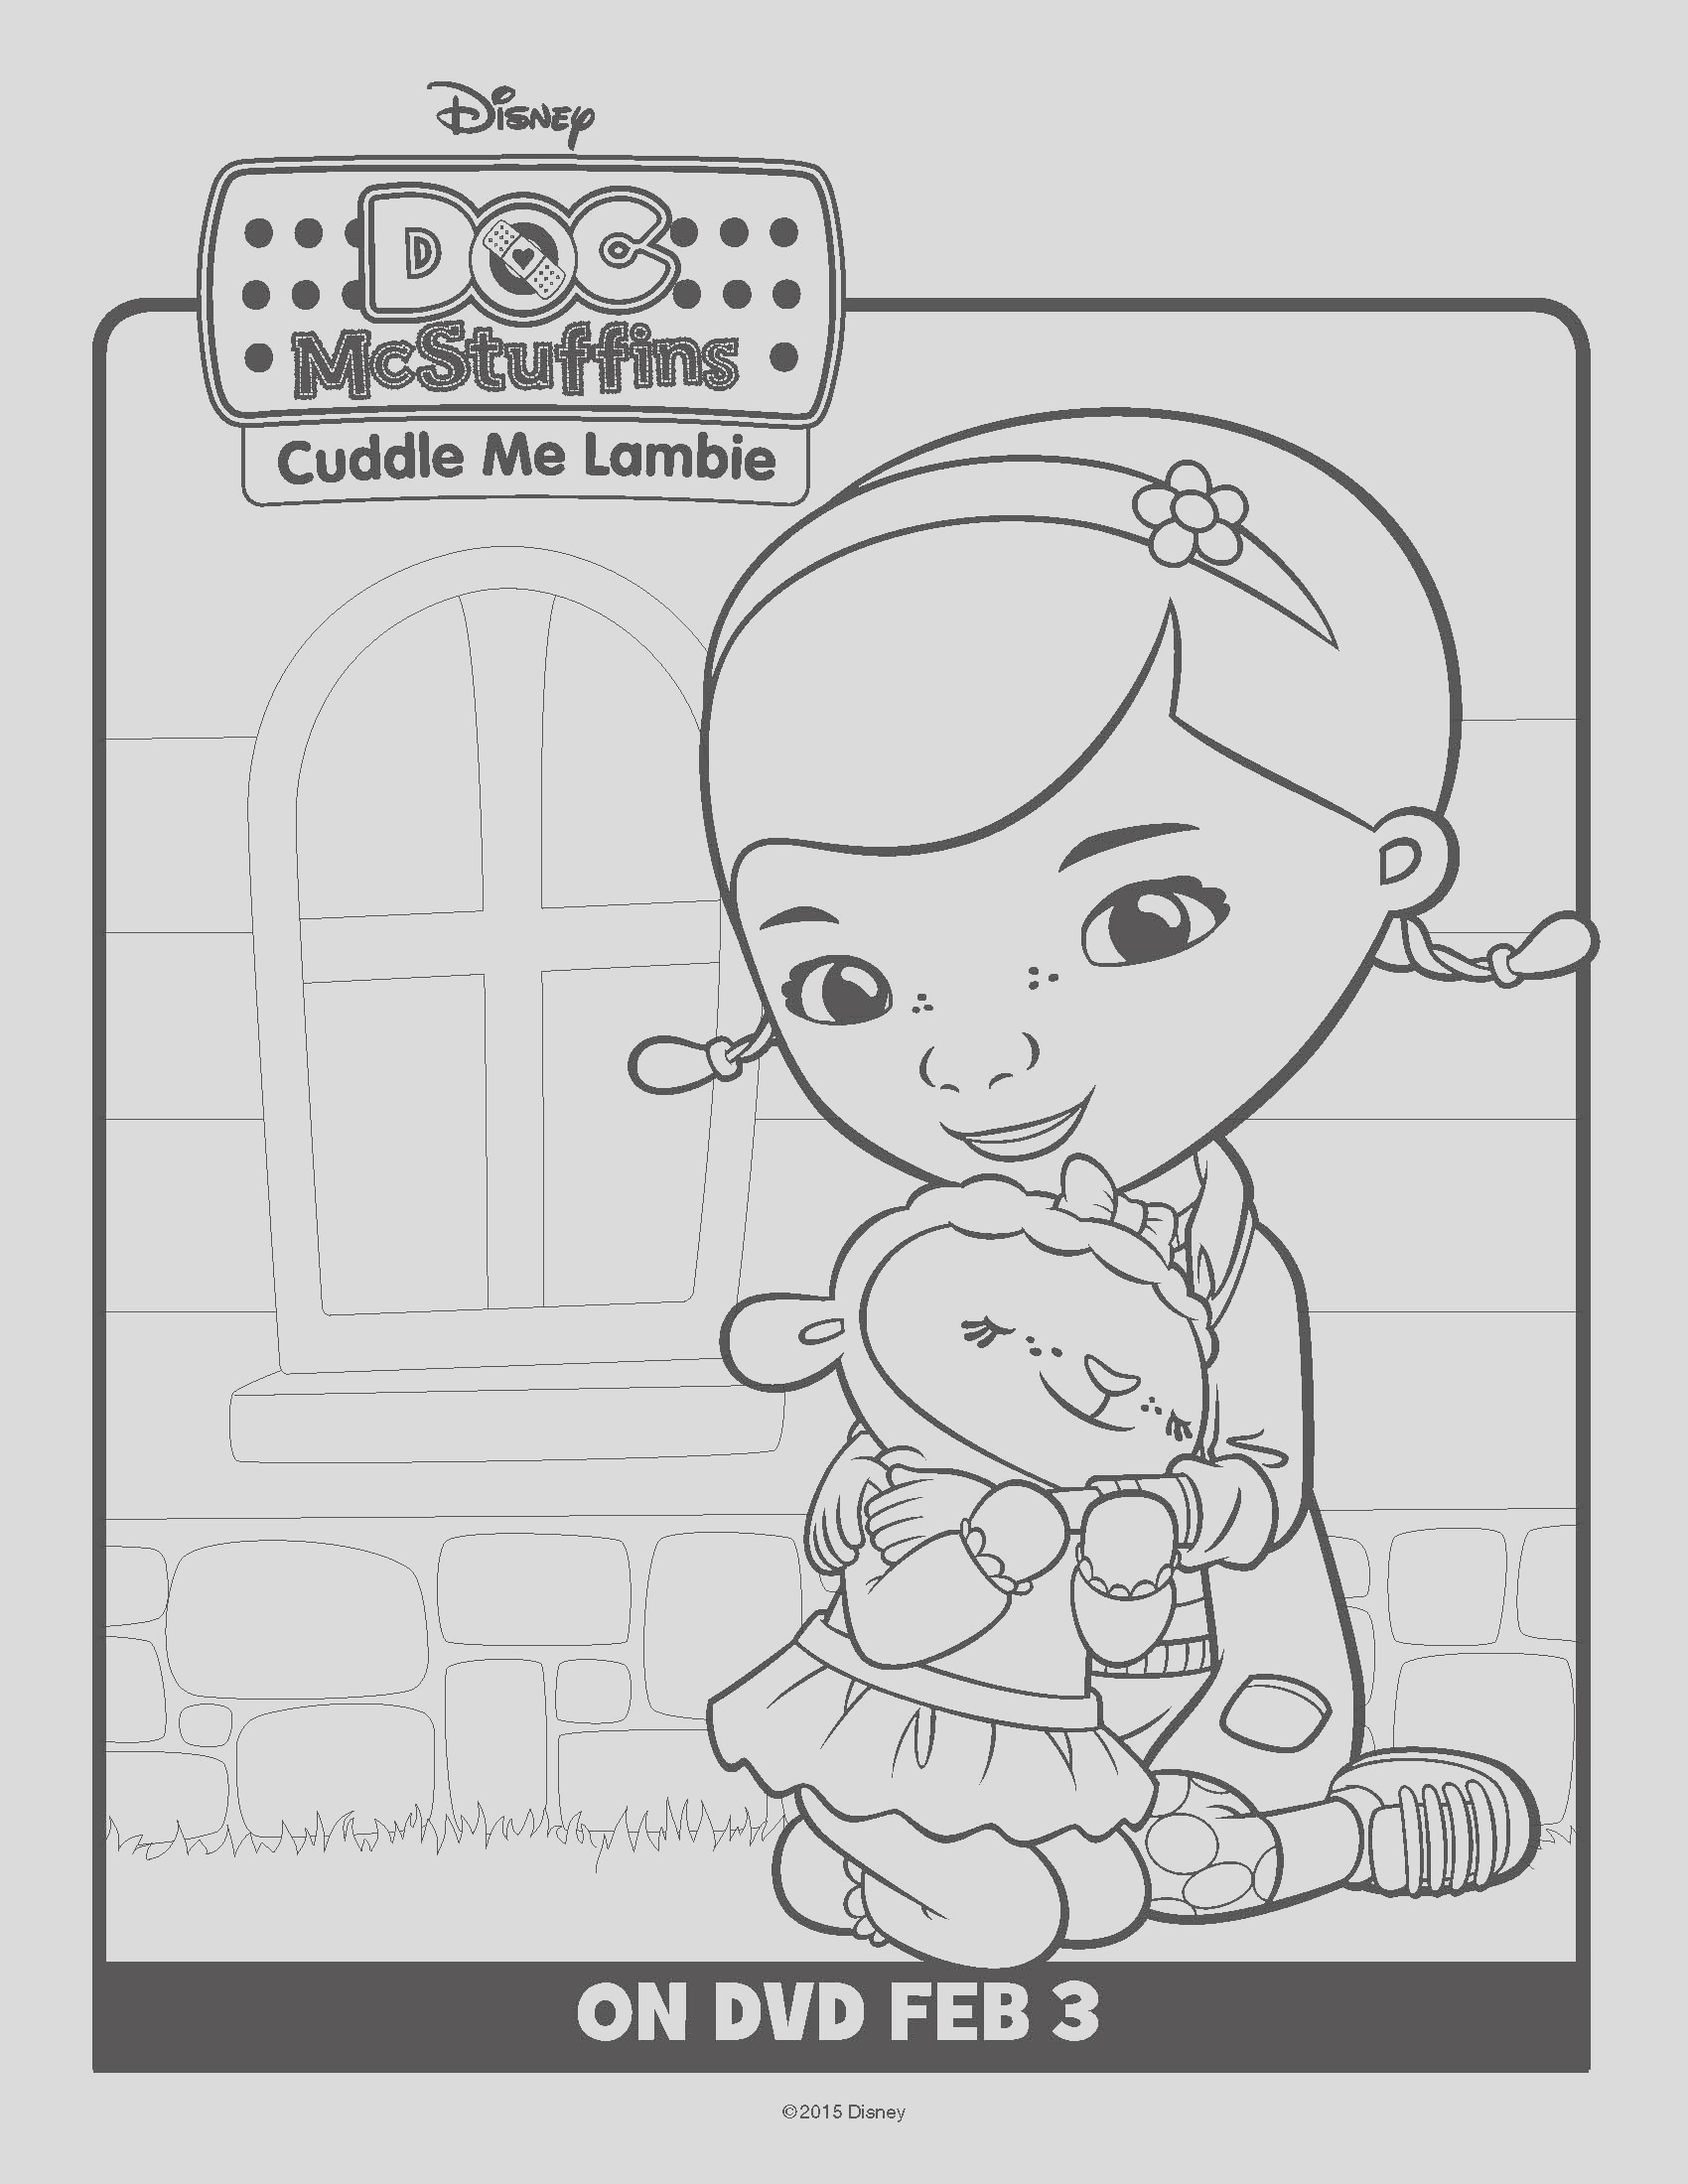 doc mcstuffins cuddle me lambie on dvd february 3 free printable coloring and activity sheets im giving away 2 dvds